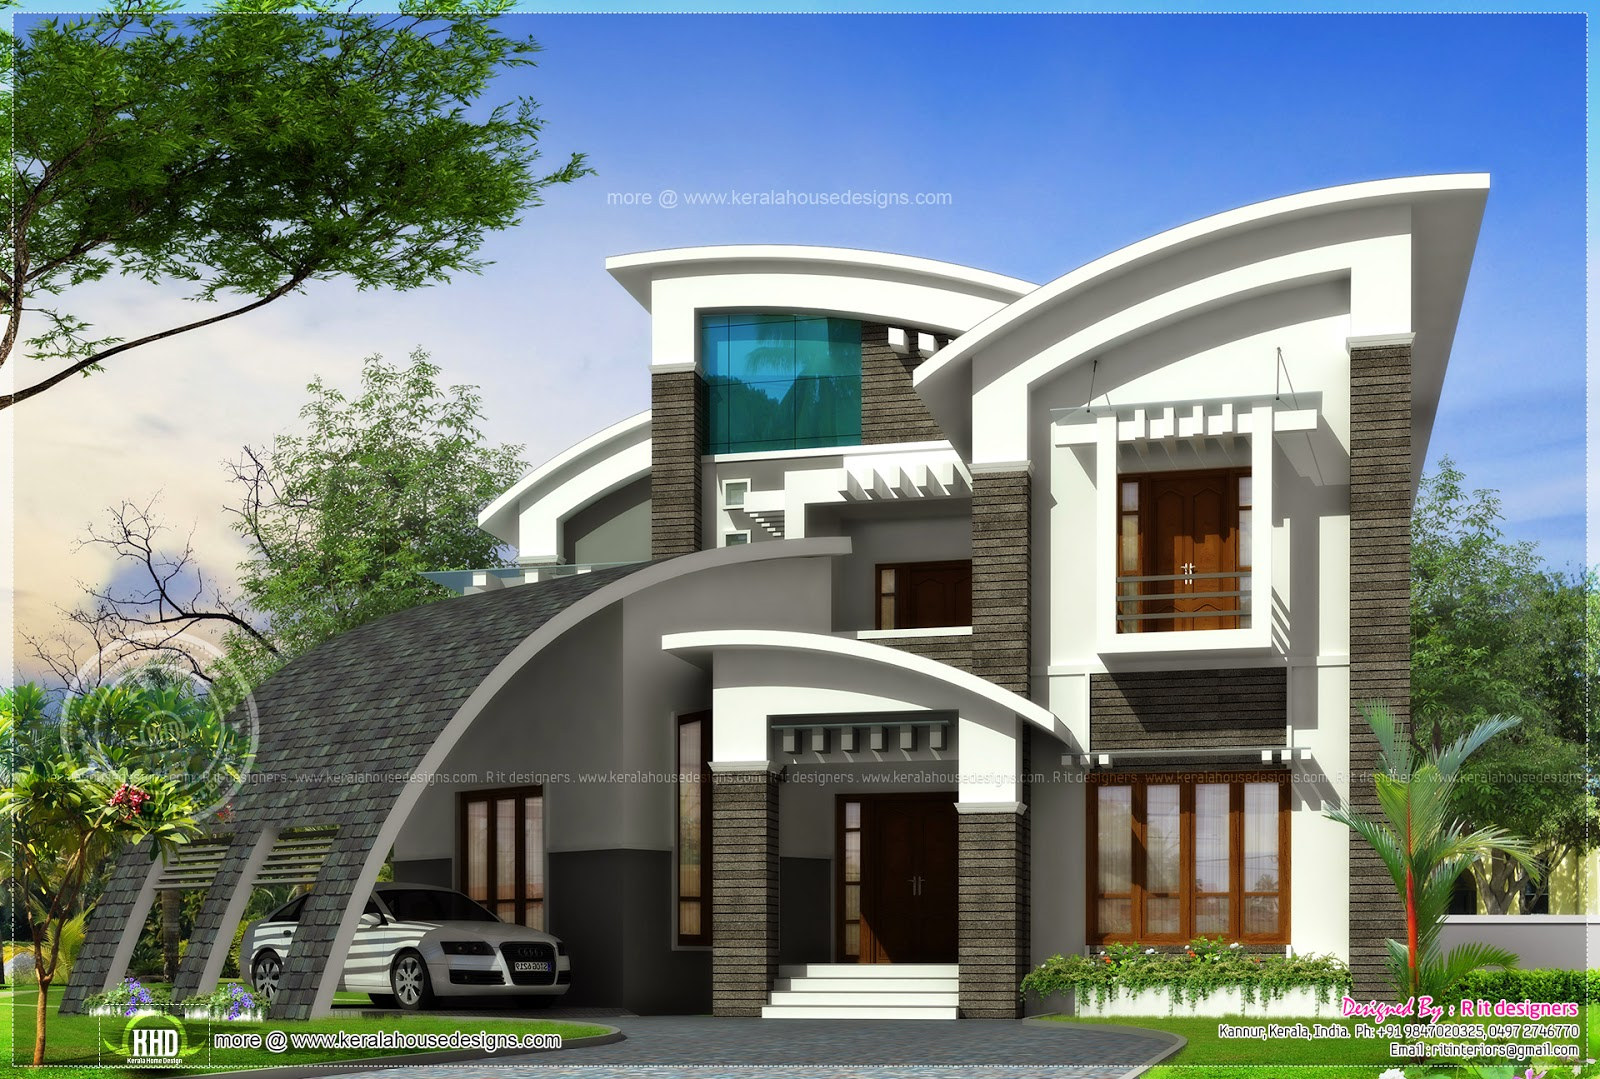 Super luxury ultra modern house design kerala home for New house plans with pictures